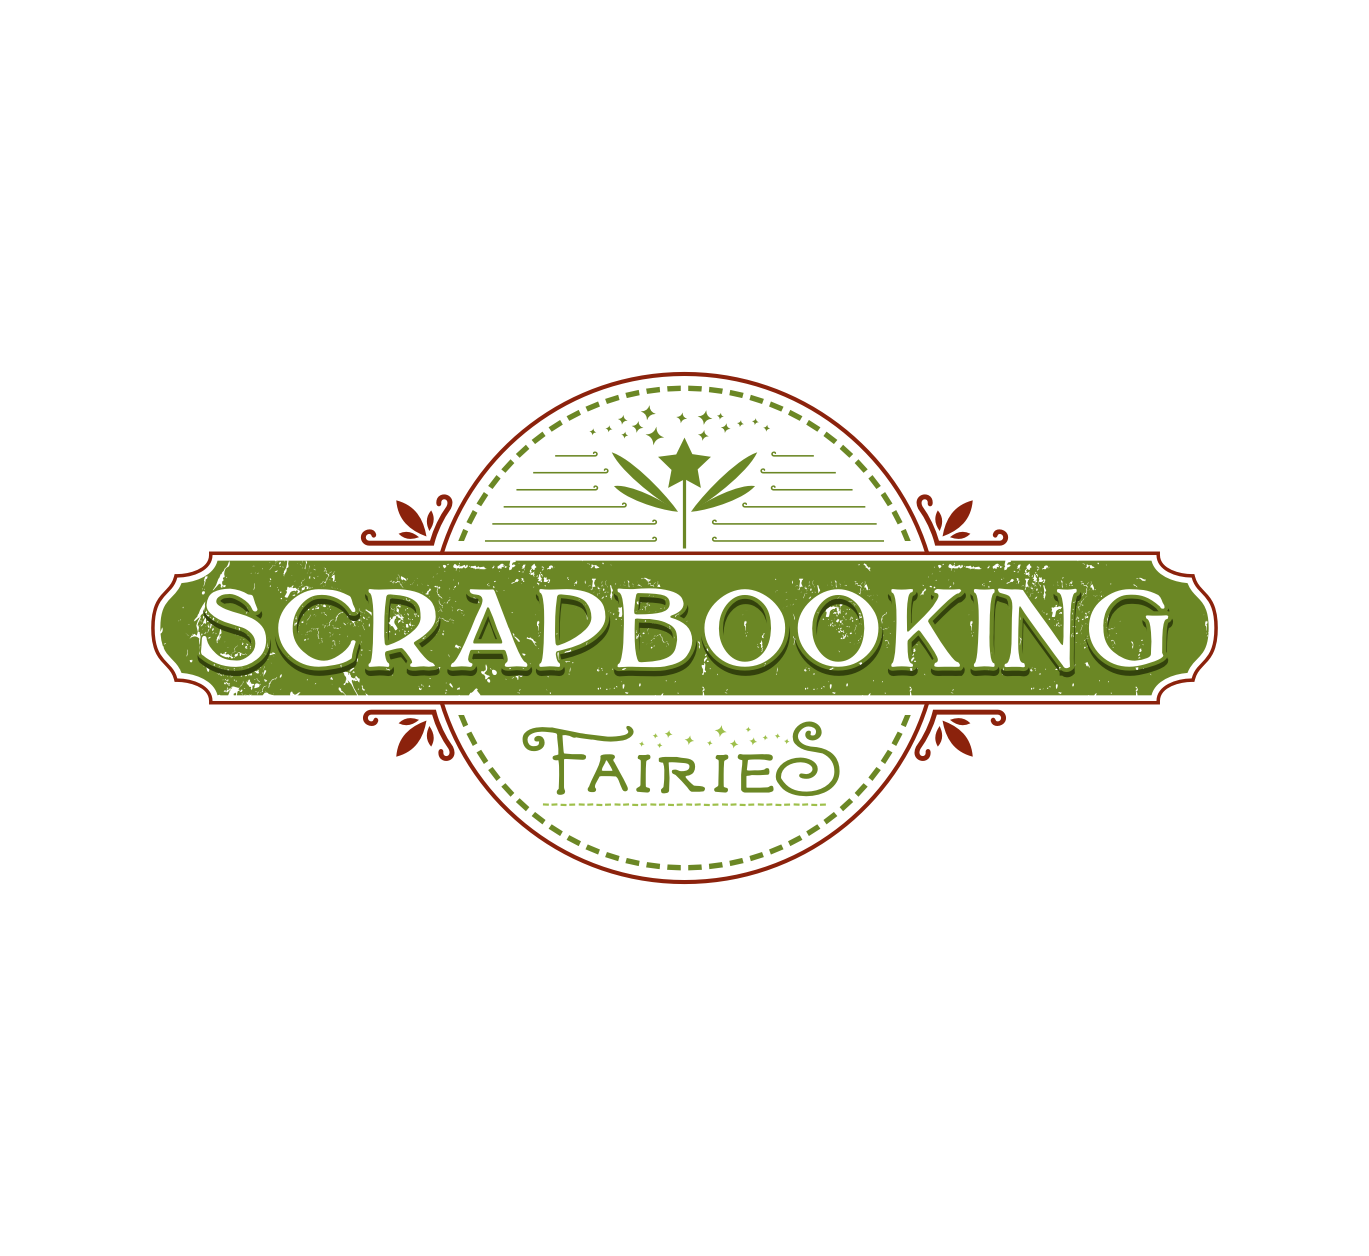 Scrapbooking Retail Store Logo by Rudy Graph